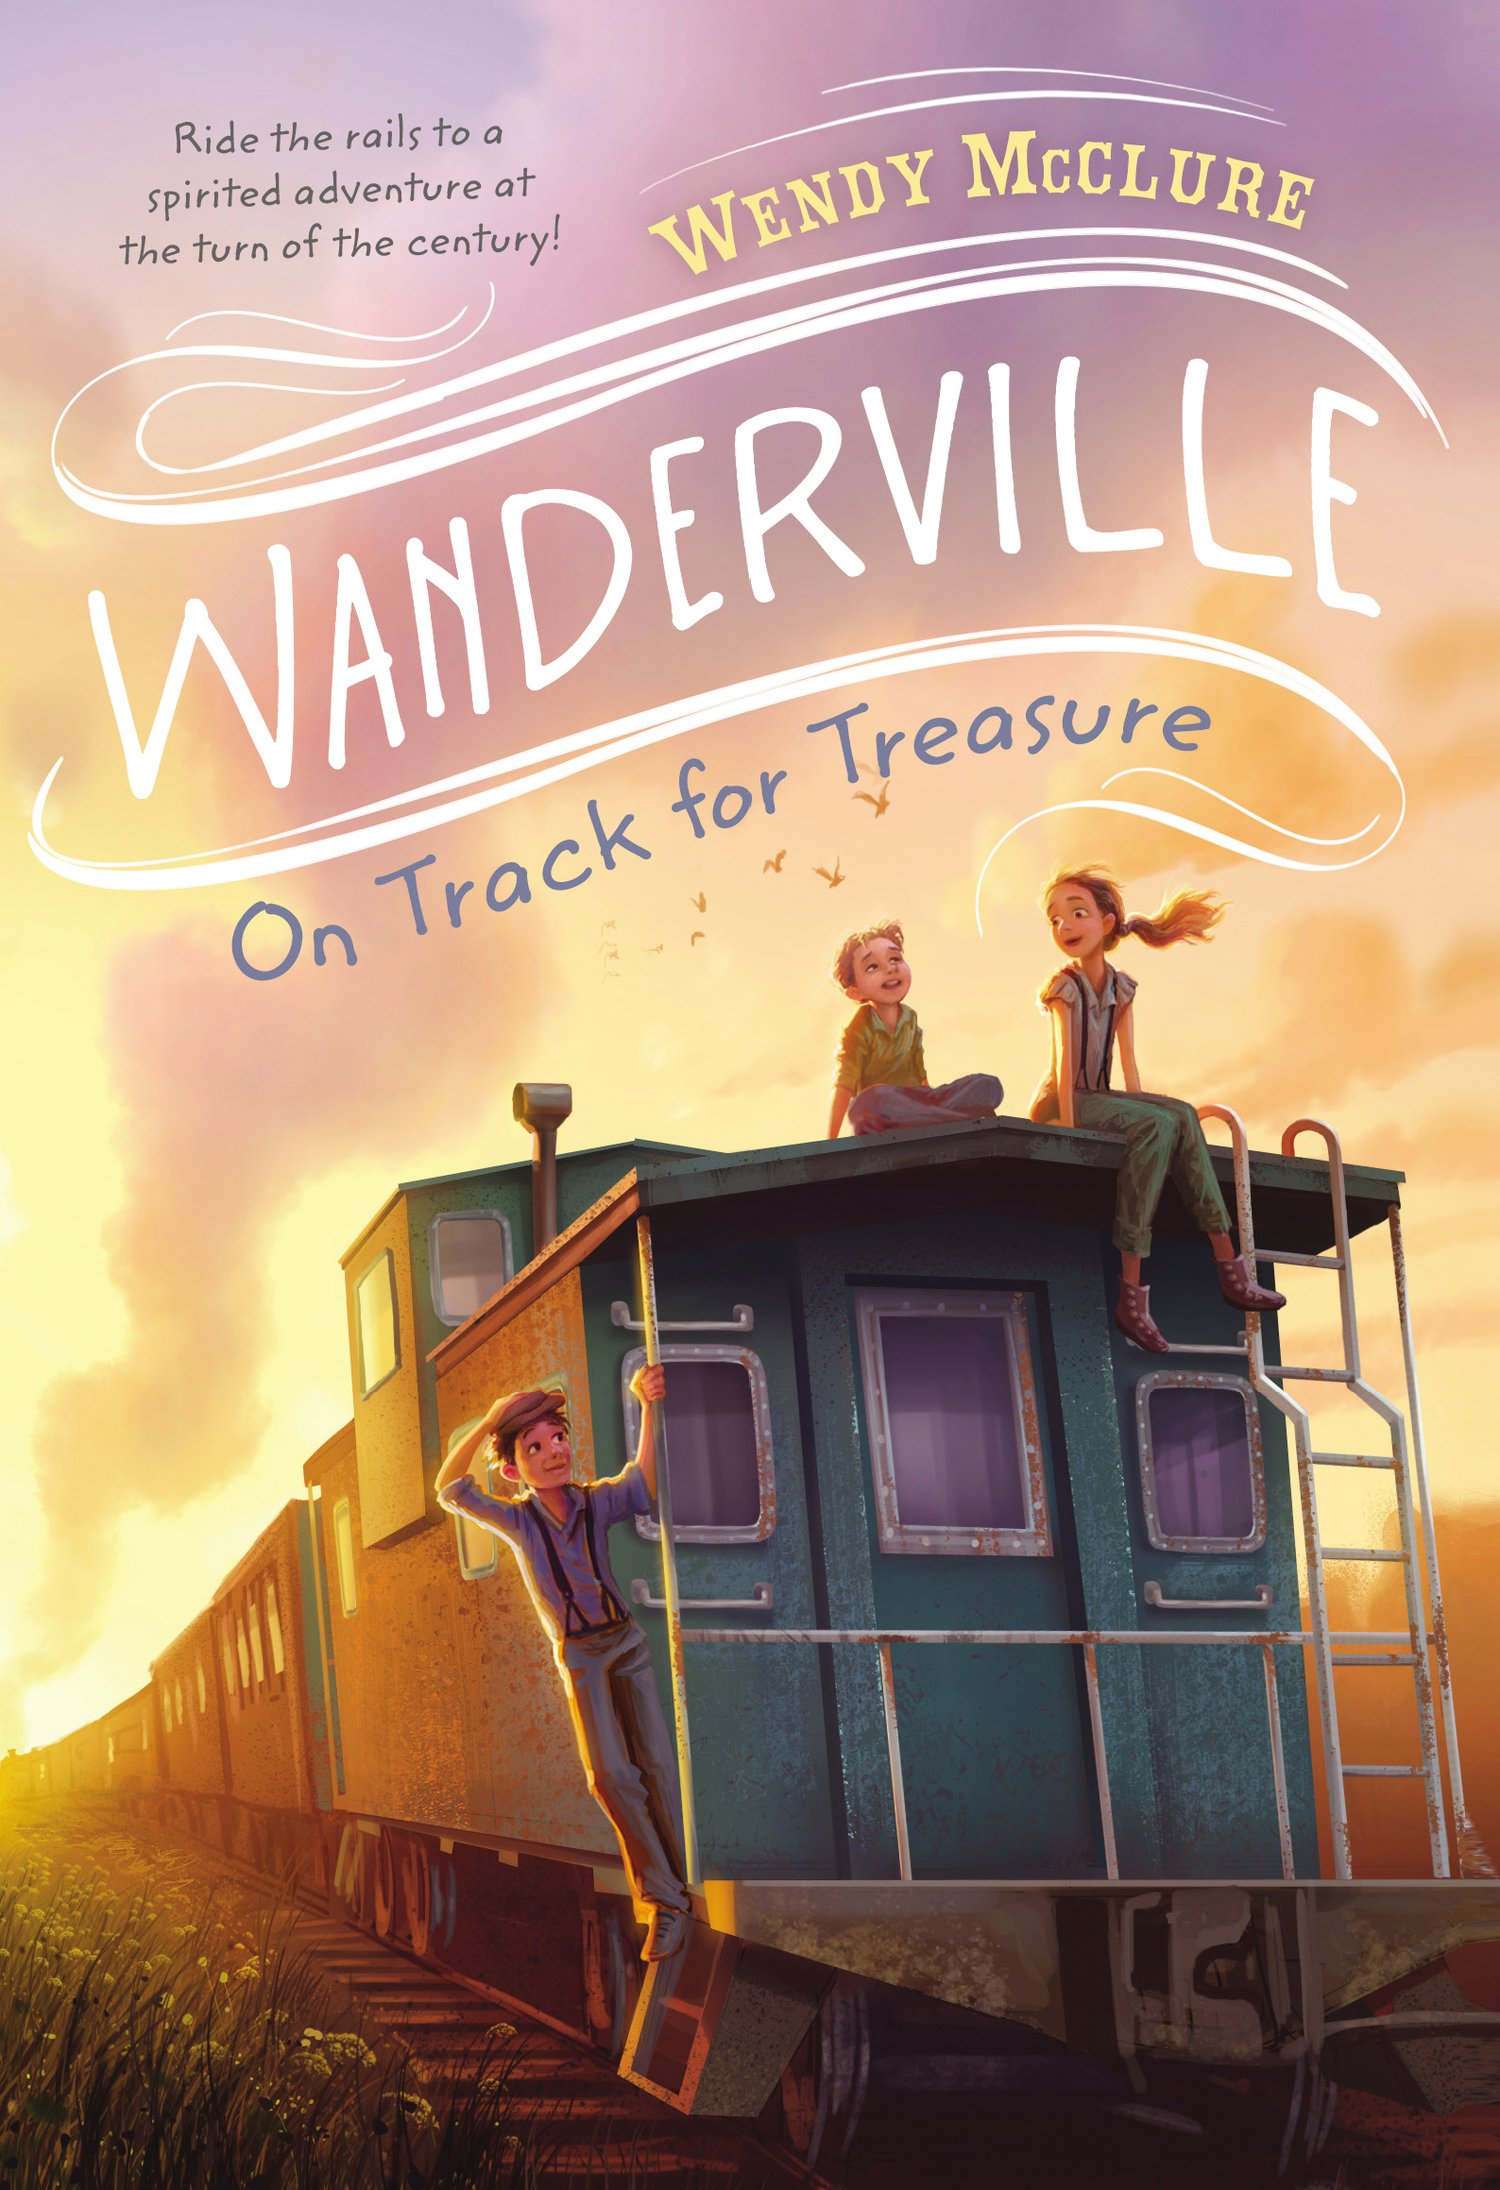 Wanderville: On Track for Treasure  by Wendy McClure